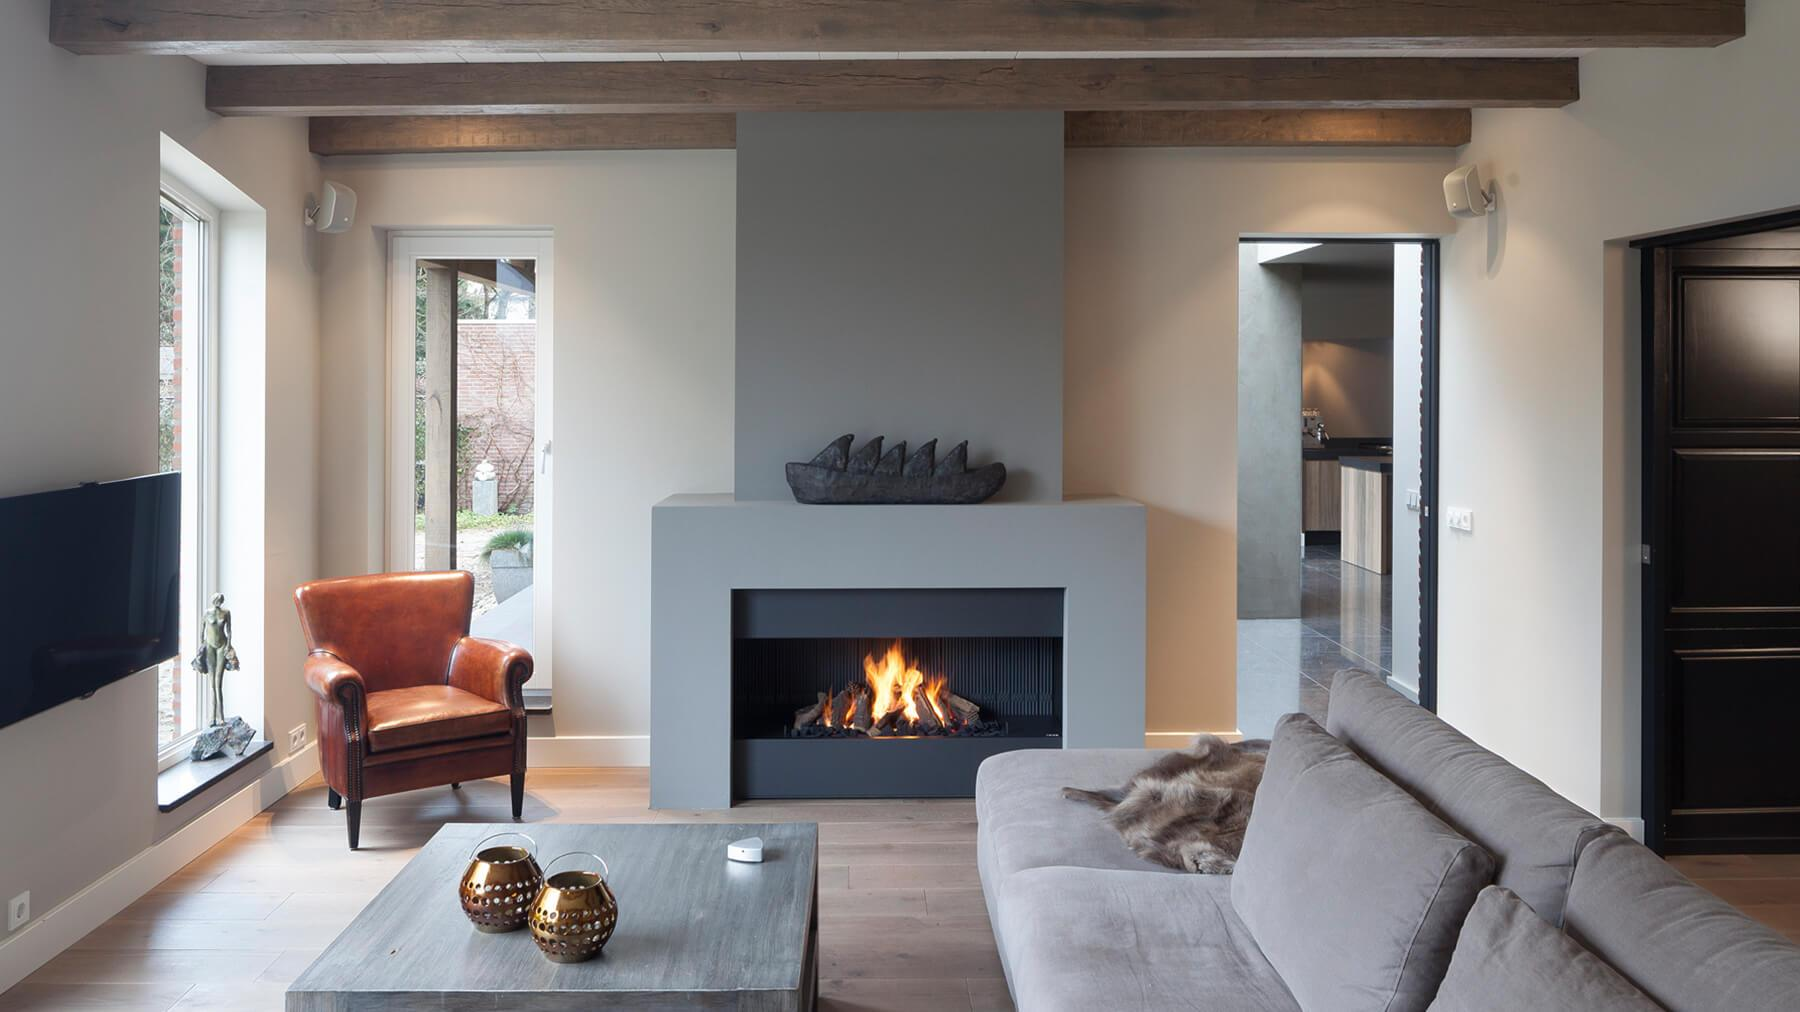 gas fireplace inspiring dragonspowerup home fireplaces logs awe modern design interior designs